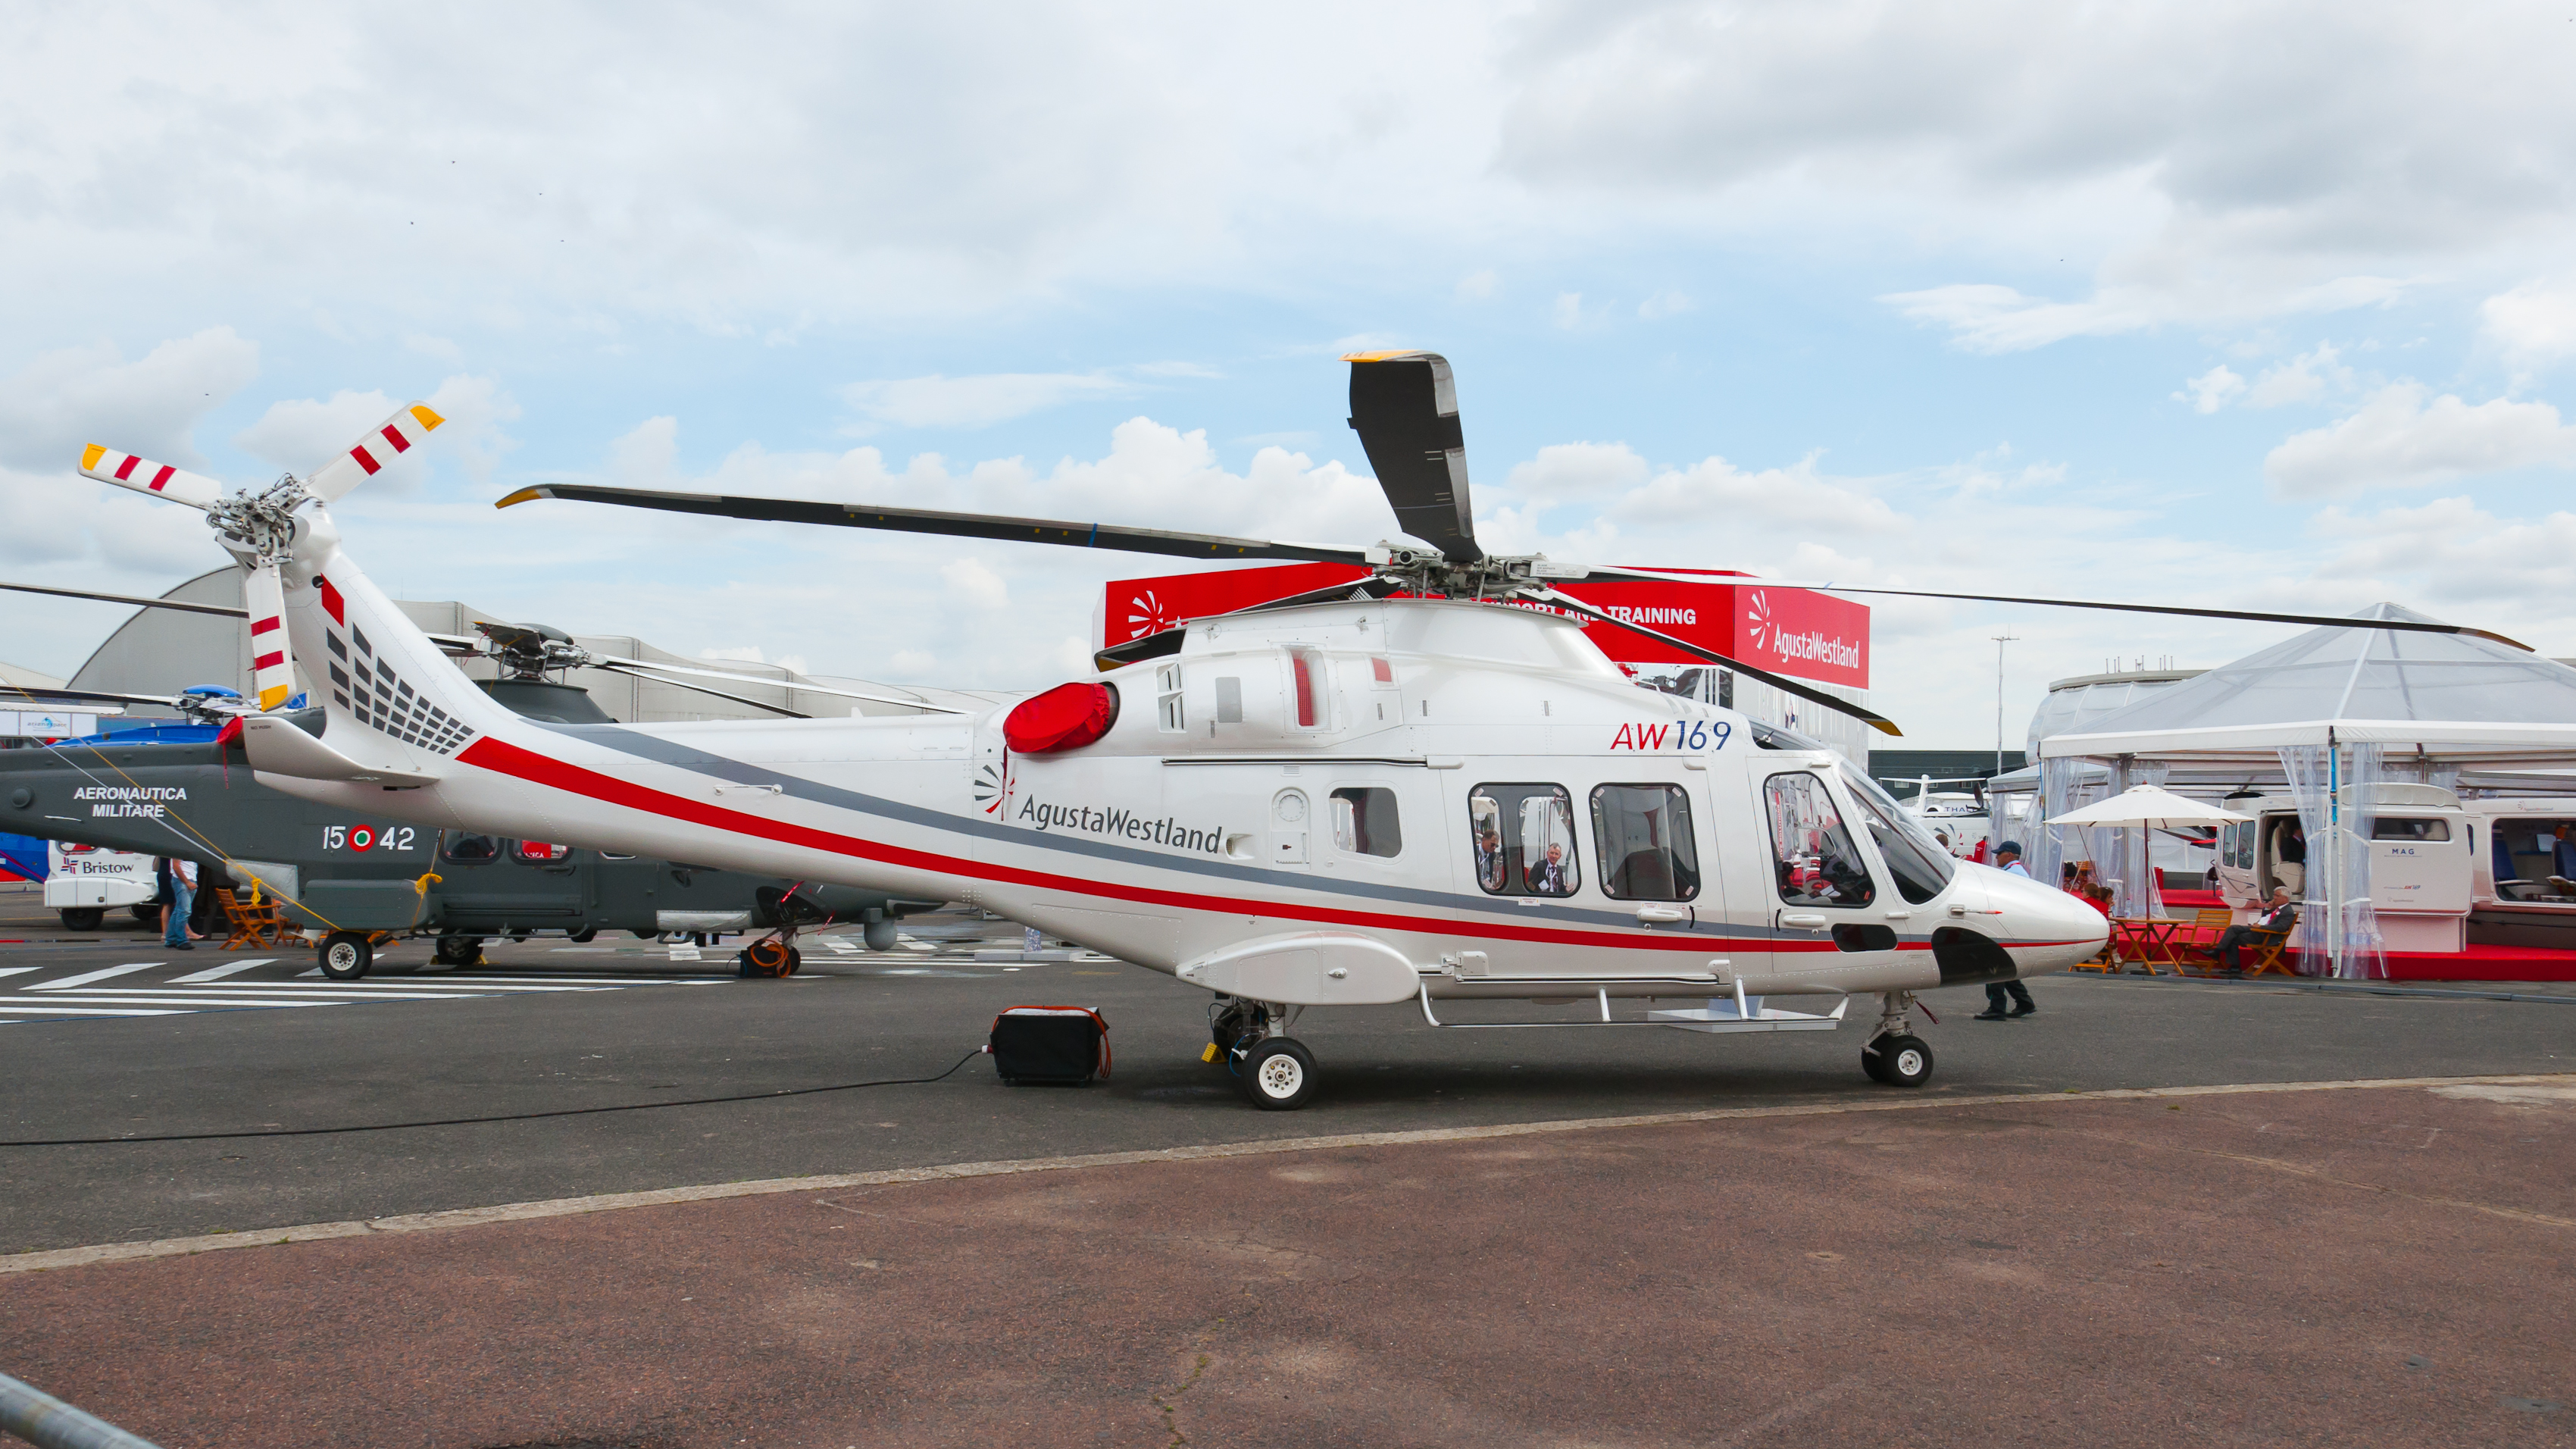 The AgustaWestland AW169 Is A Twin Engine 10 Seat Helicopter